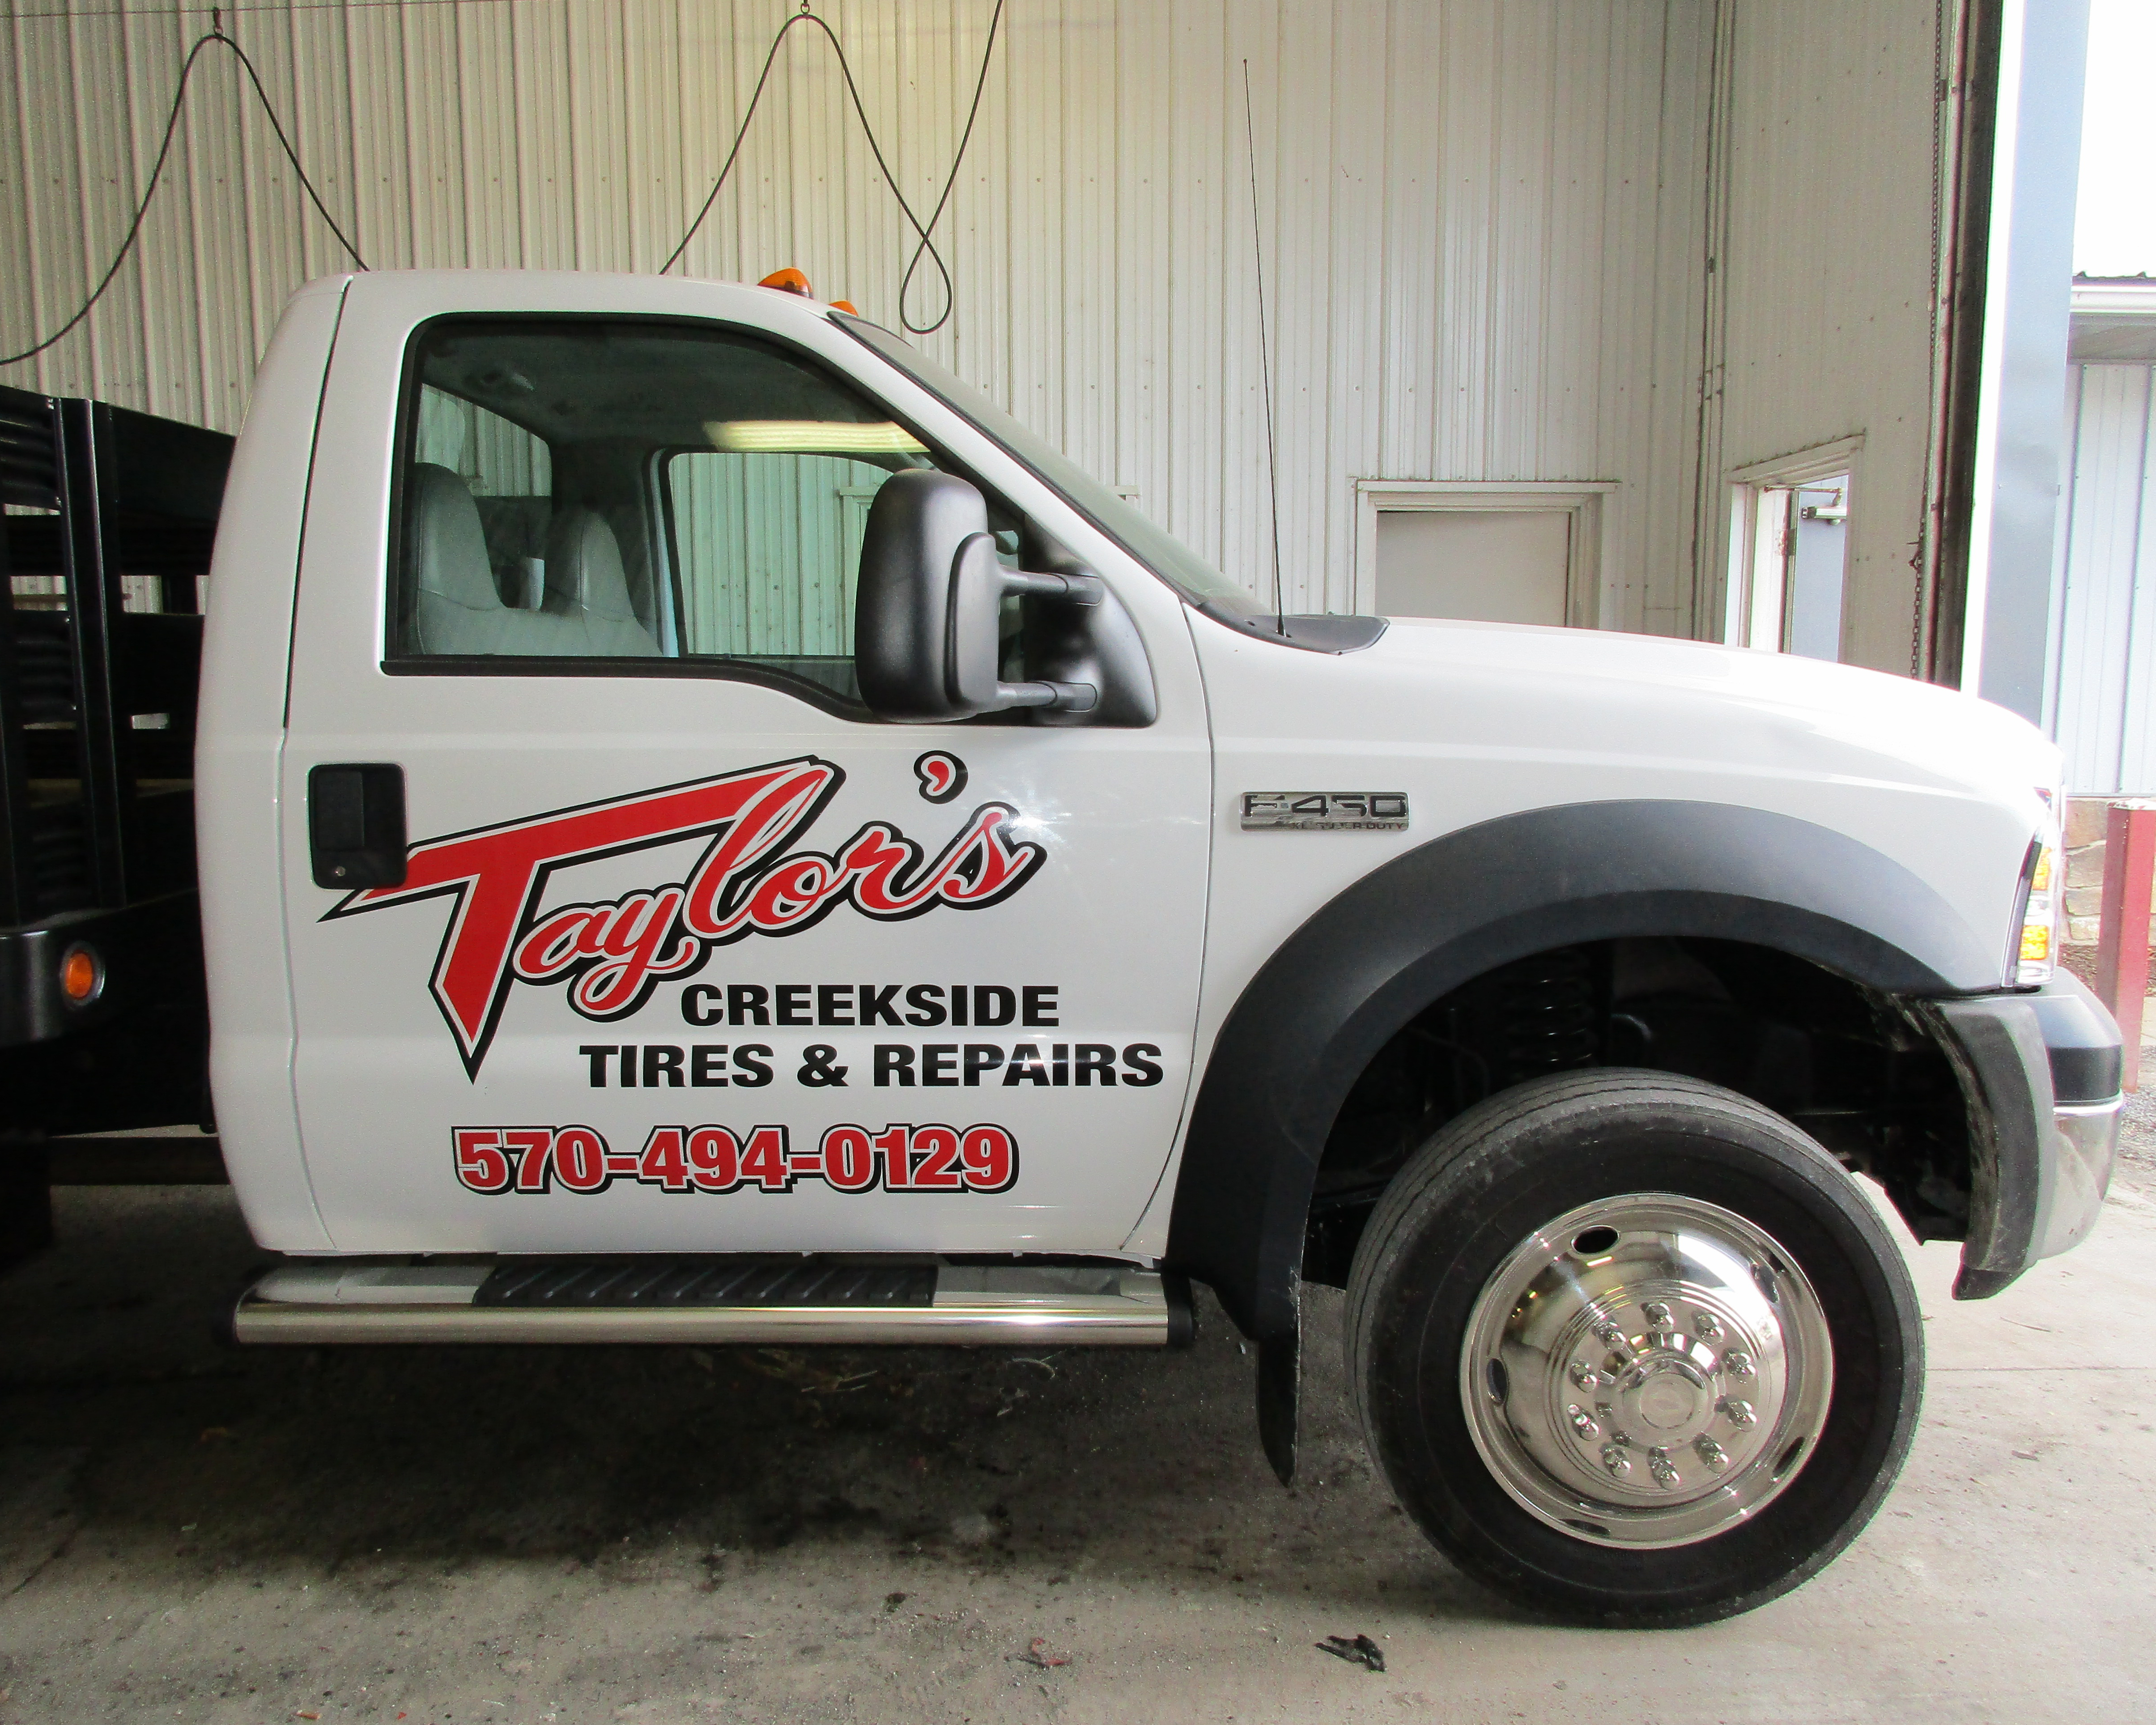 Taylor's Creekside Tires